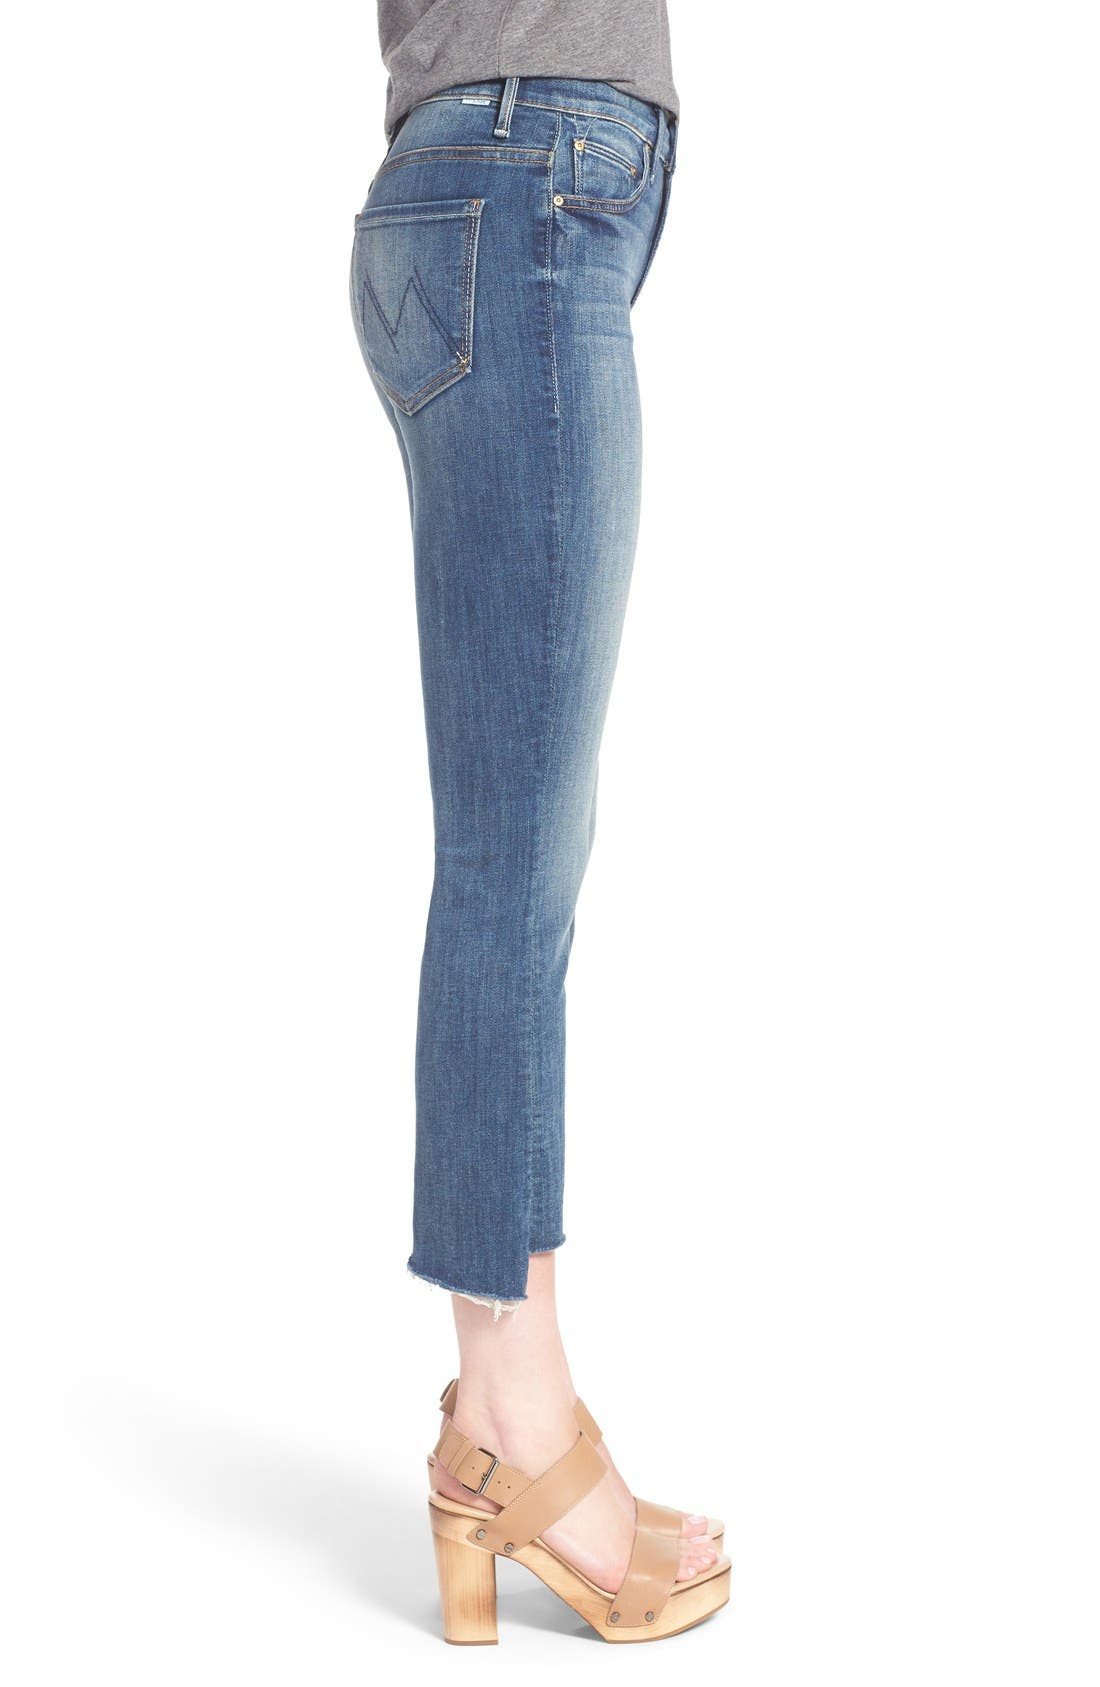 'The Insider' Crop Step Fray Jeans,                             Alternate thumbnail 4, color,                             420